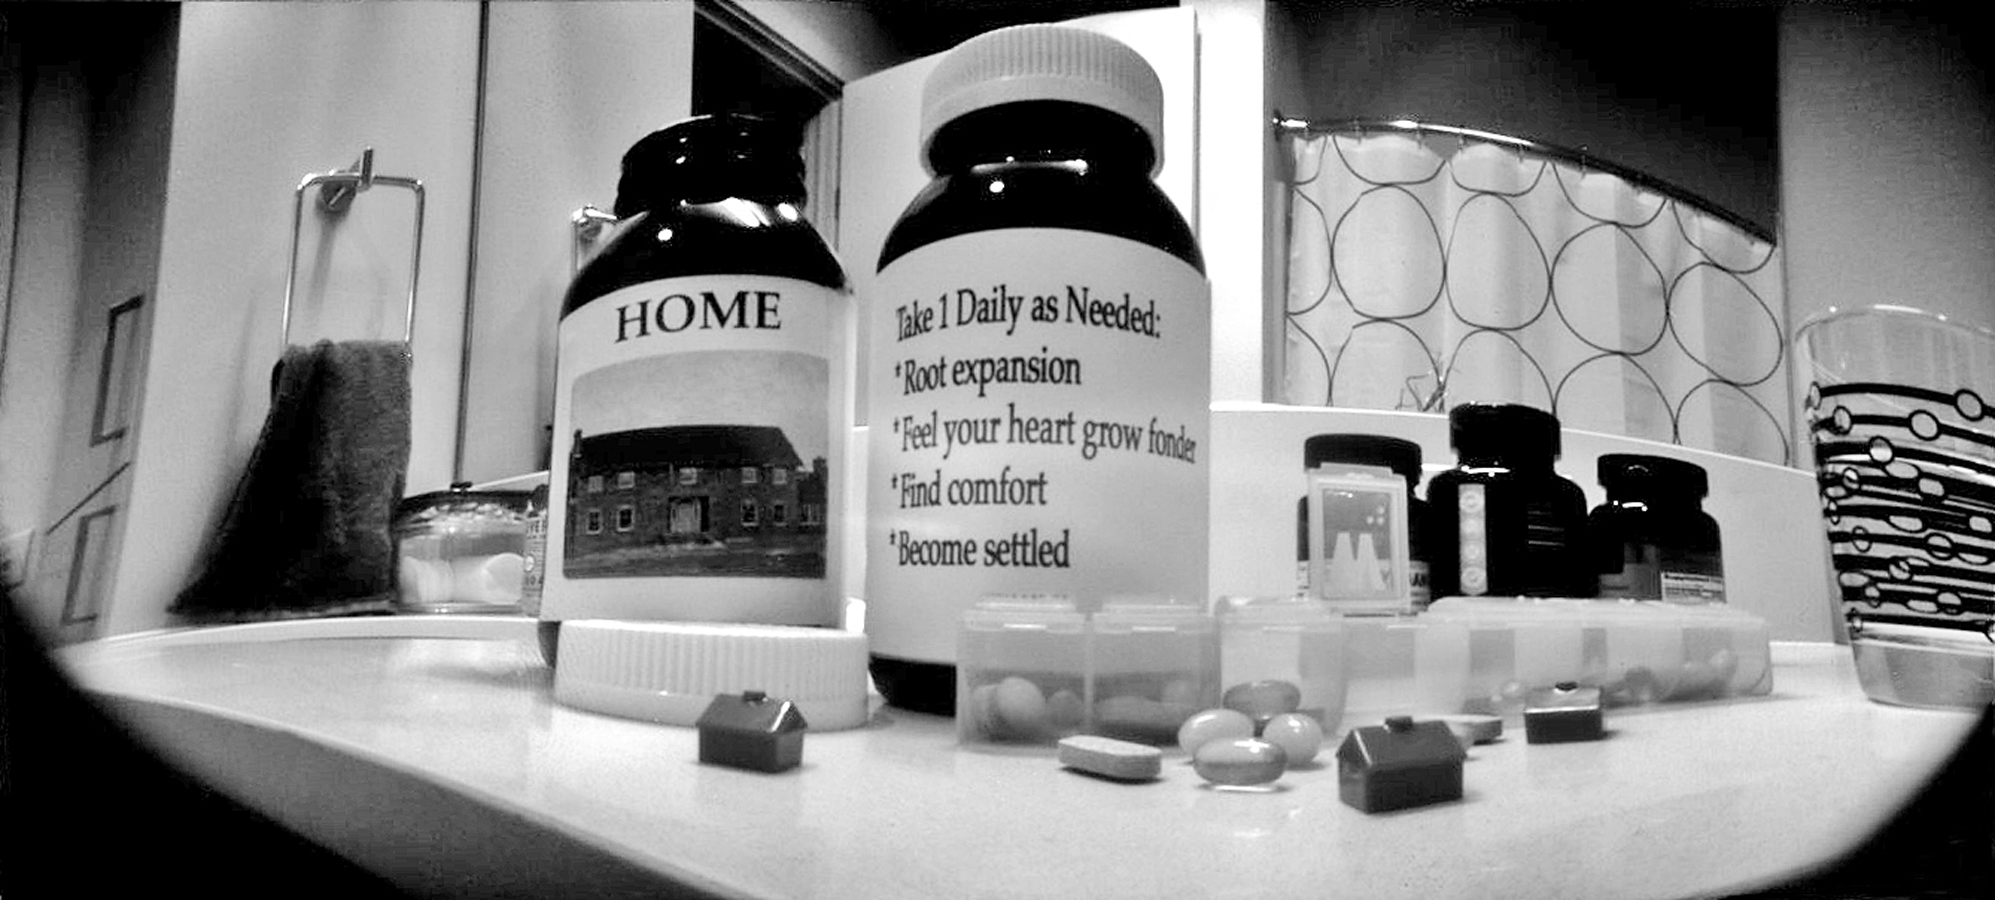 Daily Supplements Shot with The 25th on Ilford Matte photo paper 3 hour exposure